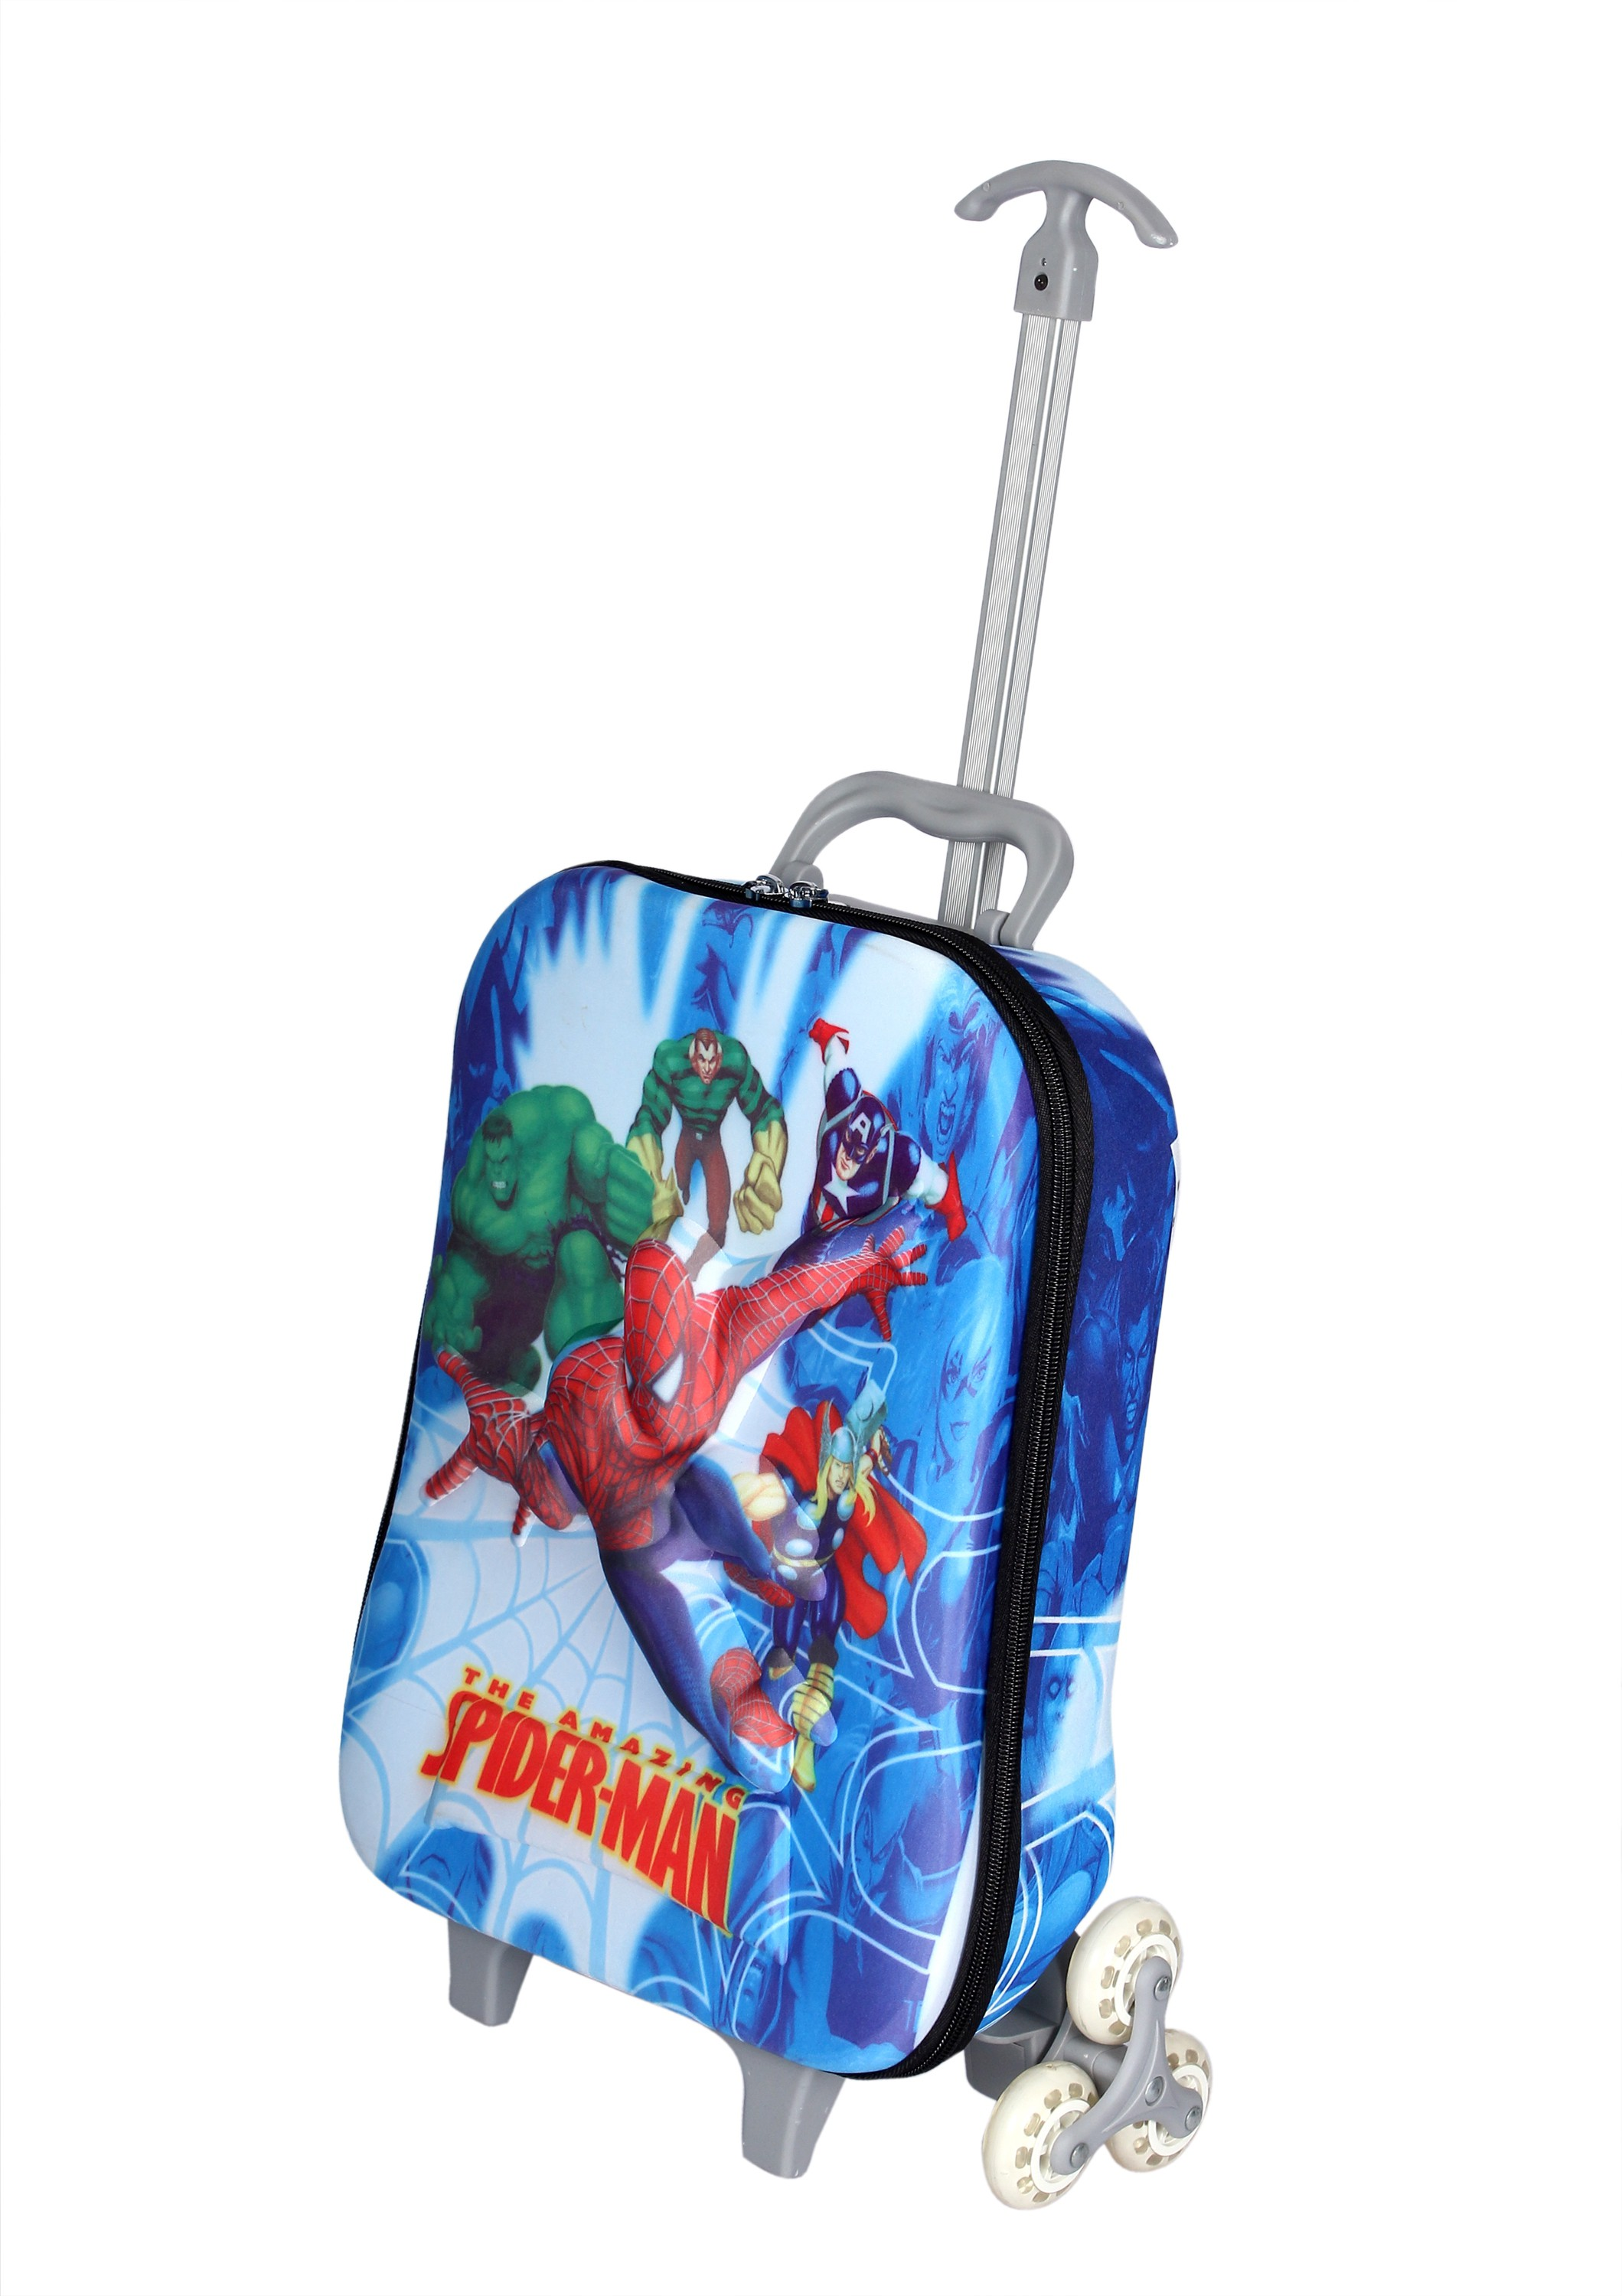 HSR Stylish 3D Design Childrens Travelling Trolley Bag Small Travel Bag(Multicolor)